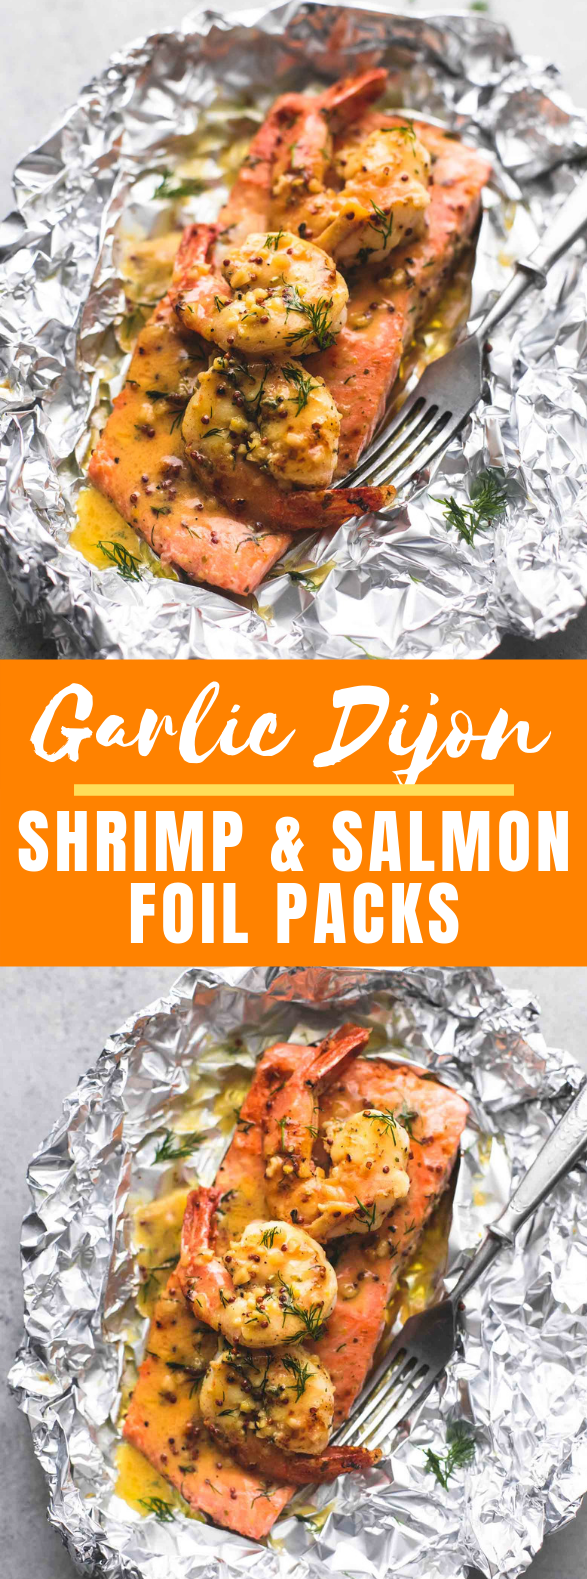 GARLIC DIJON SHRIMP AND SALMON FOIL PACKS #dinner #summer